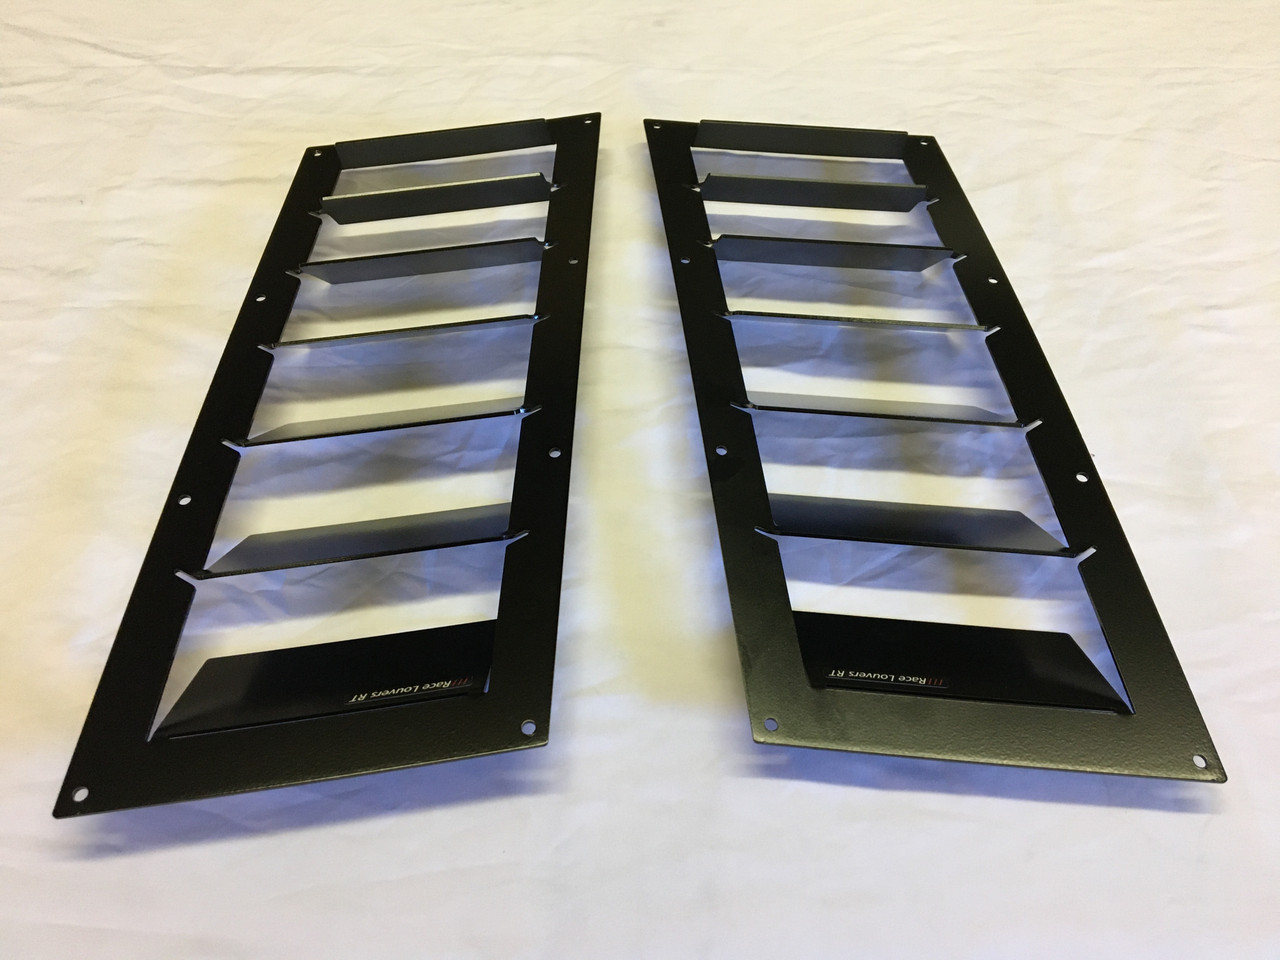 Race Louver '08-14 WRX RT trim straight angular pair car hood extractor is designed for street, high performance driving and track duty.